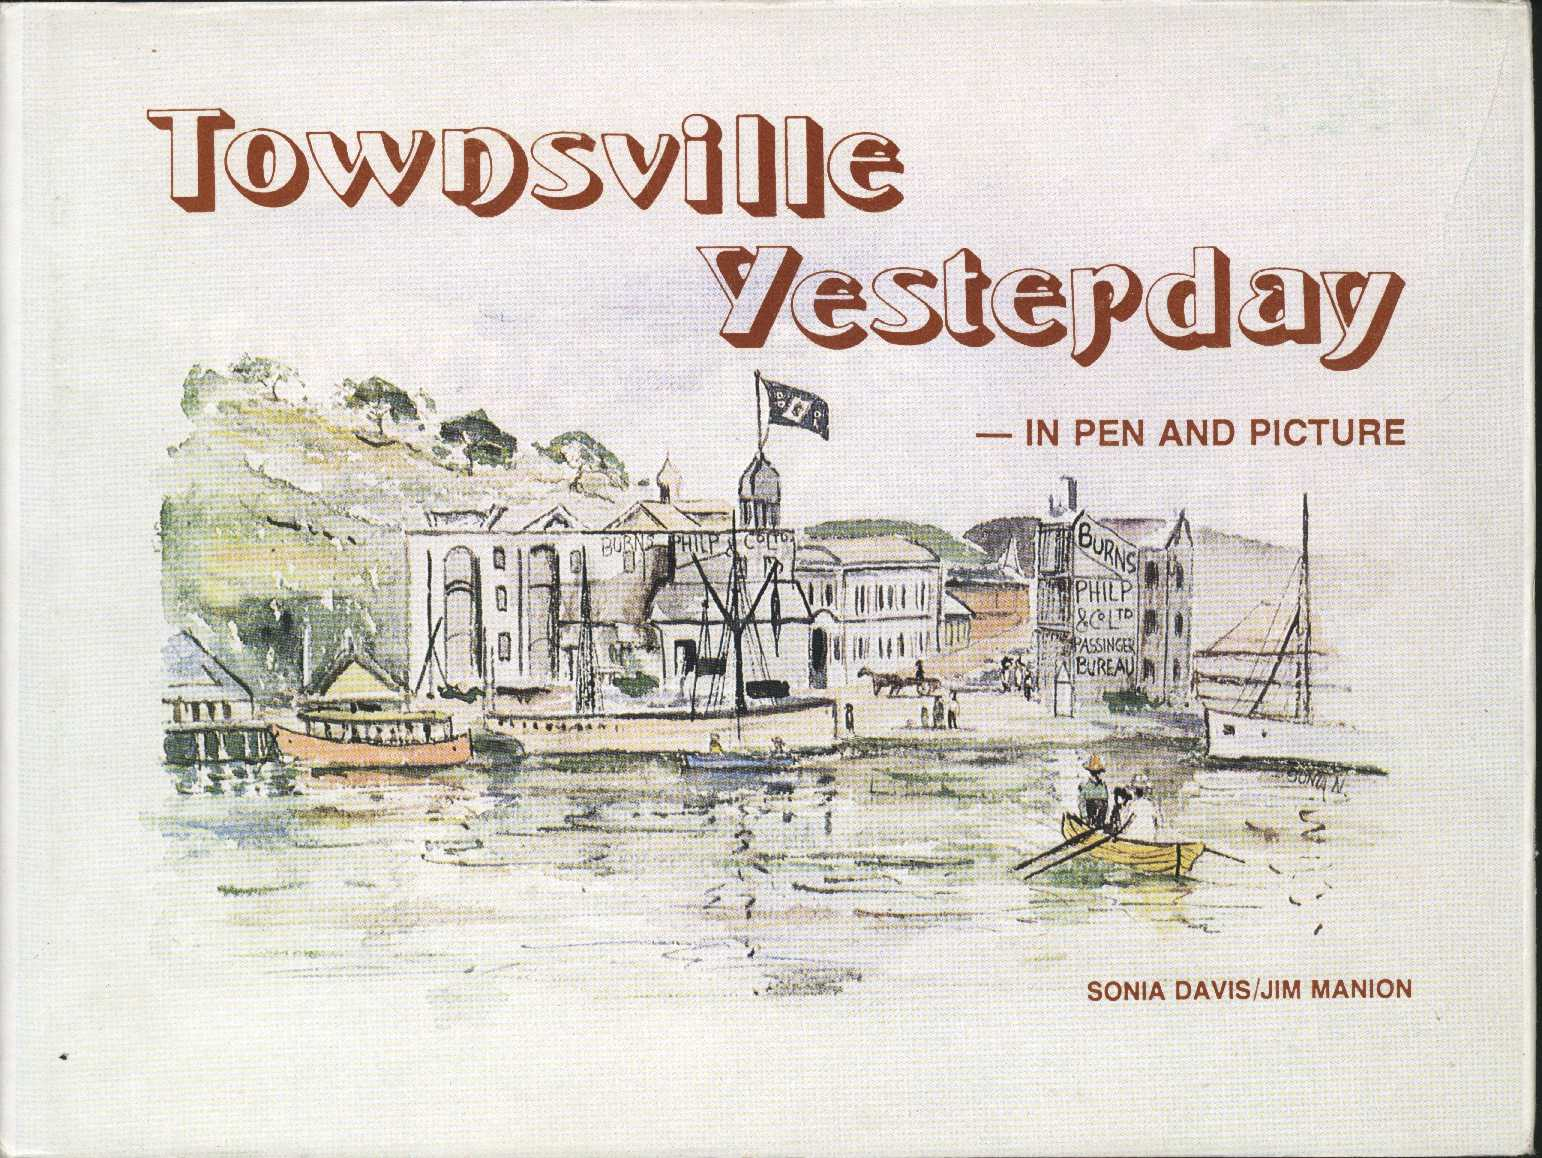 Townsville book of historic images. Townsville Yesterday with illustrations. Jim Manion